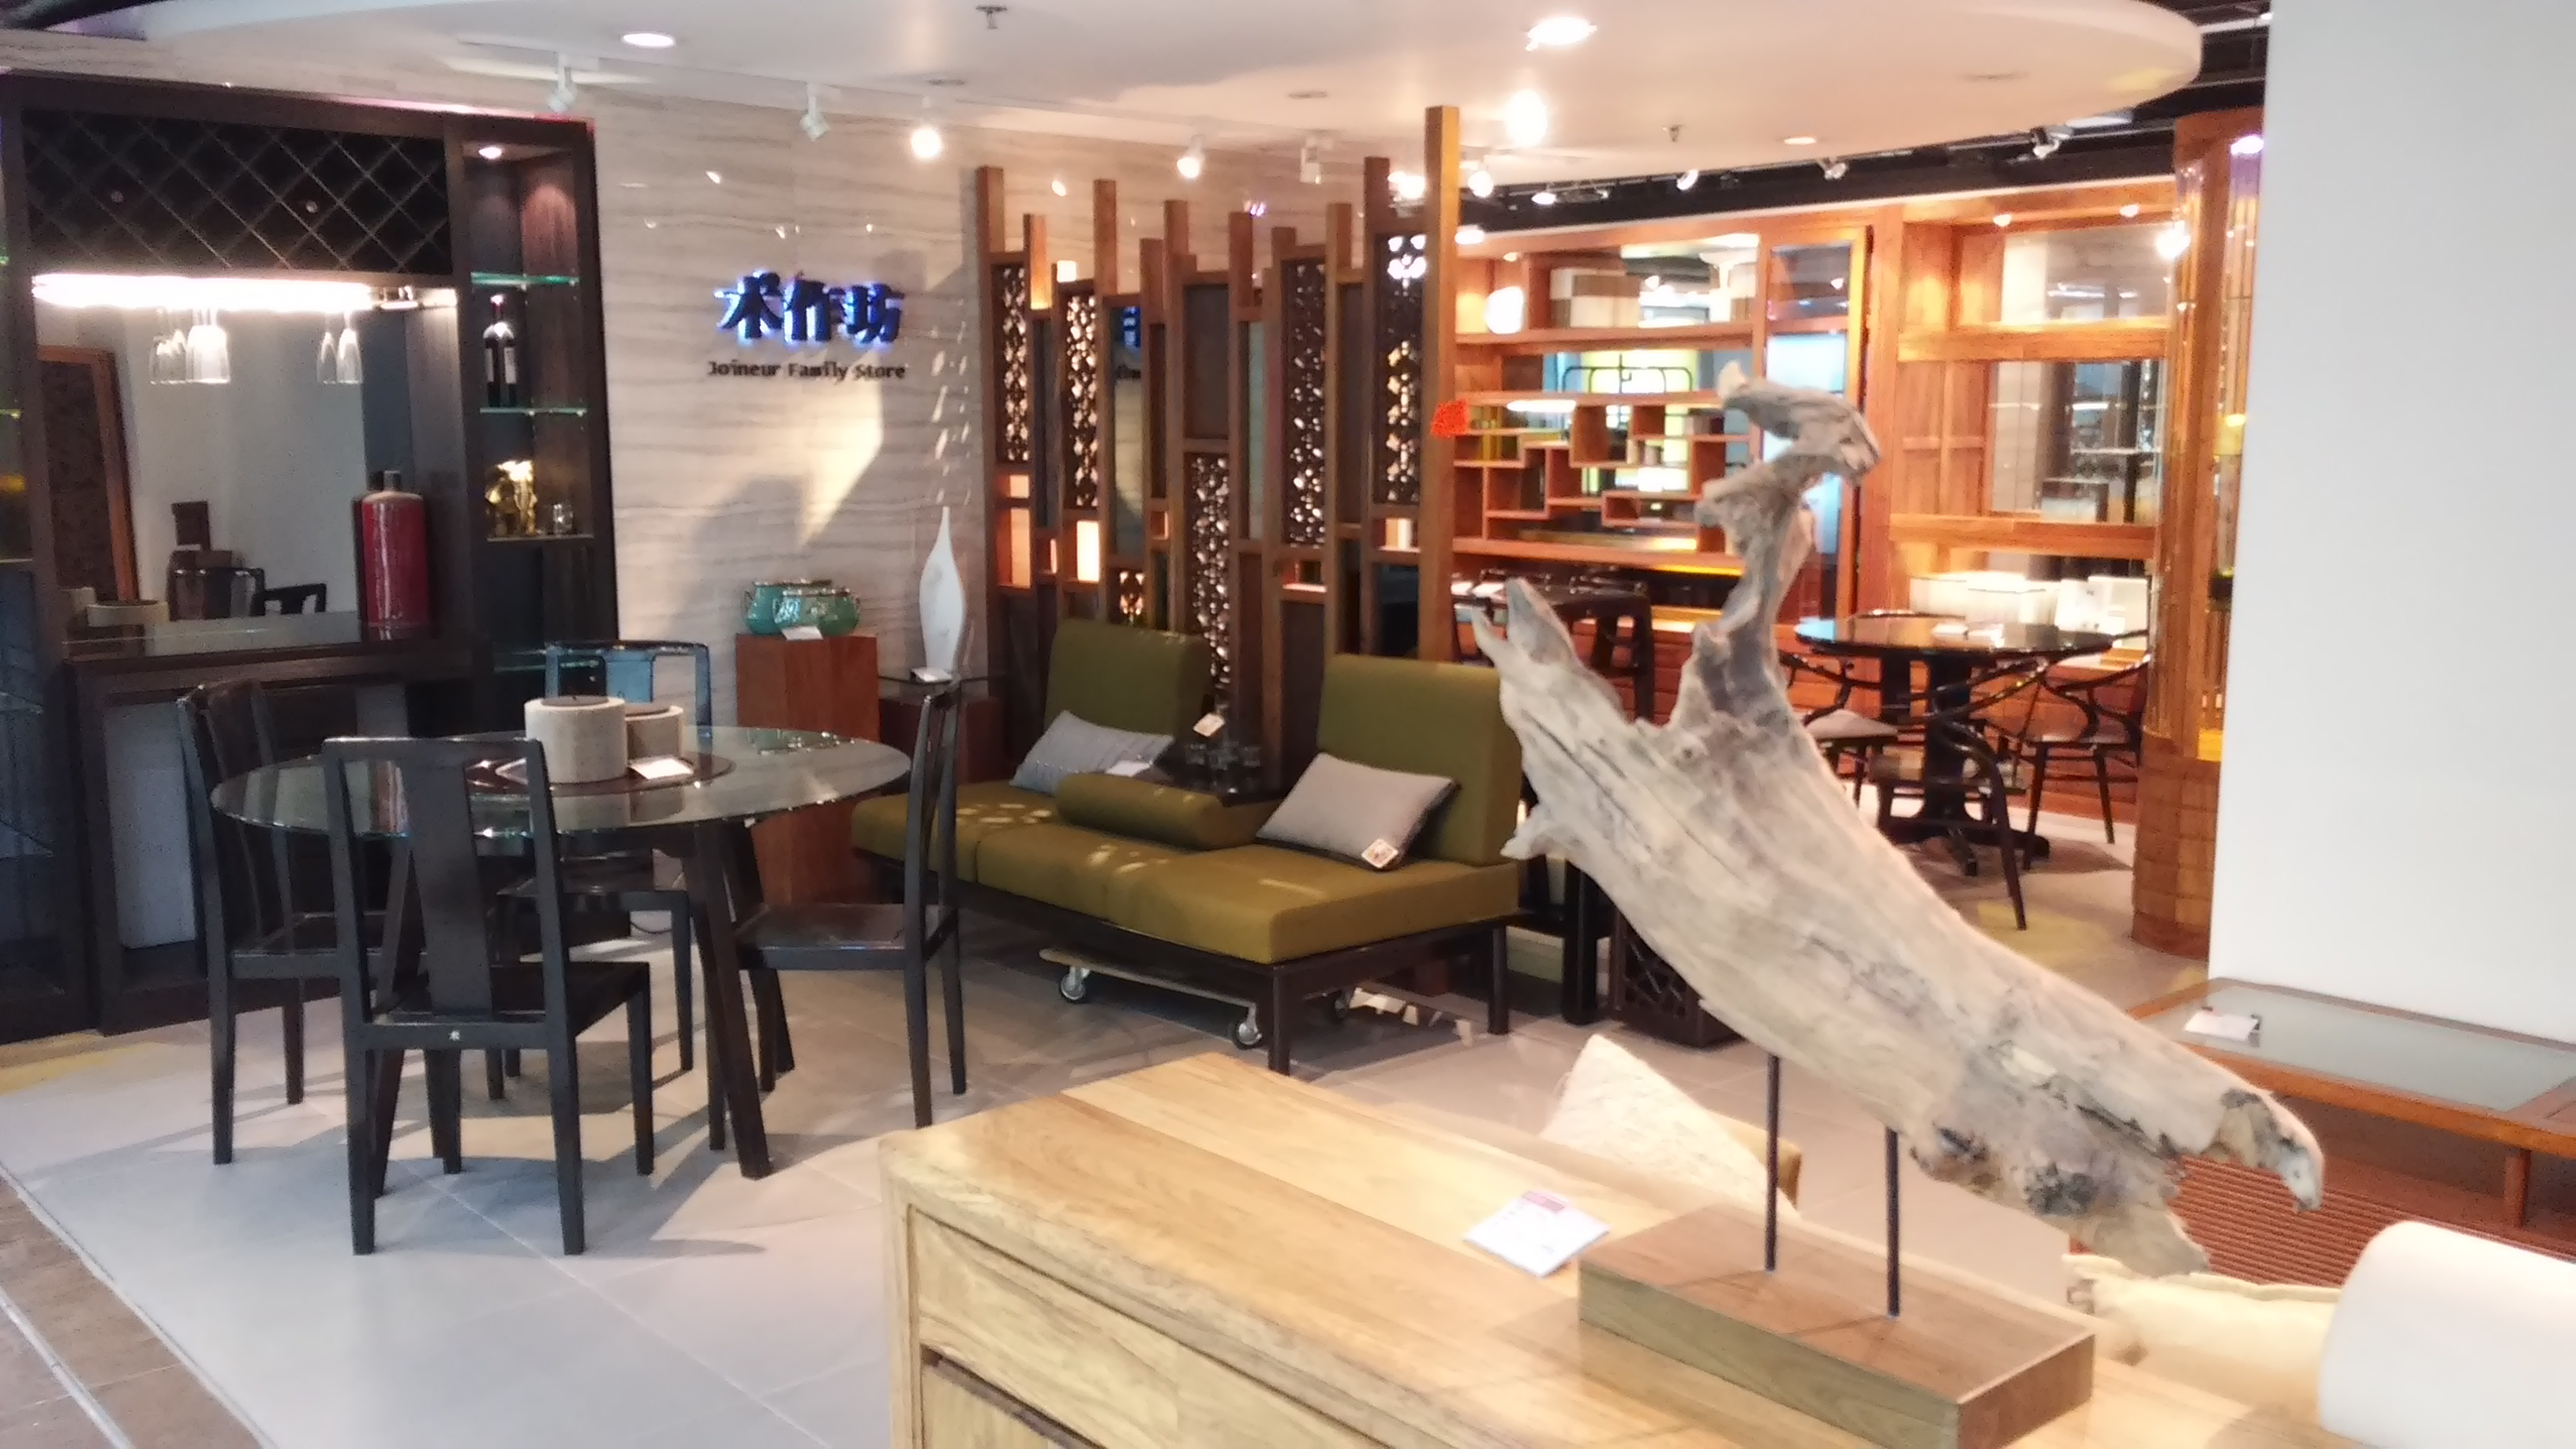 The Furniture Mall File Hk Kln Bay Emax Home Shopping Mall Furniture Shop Nov